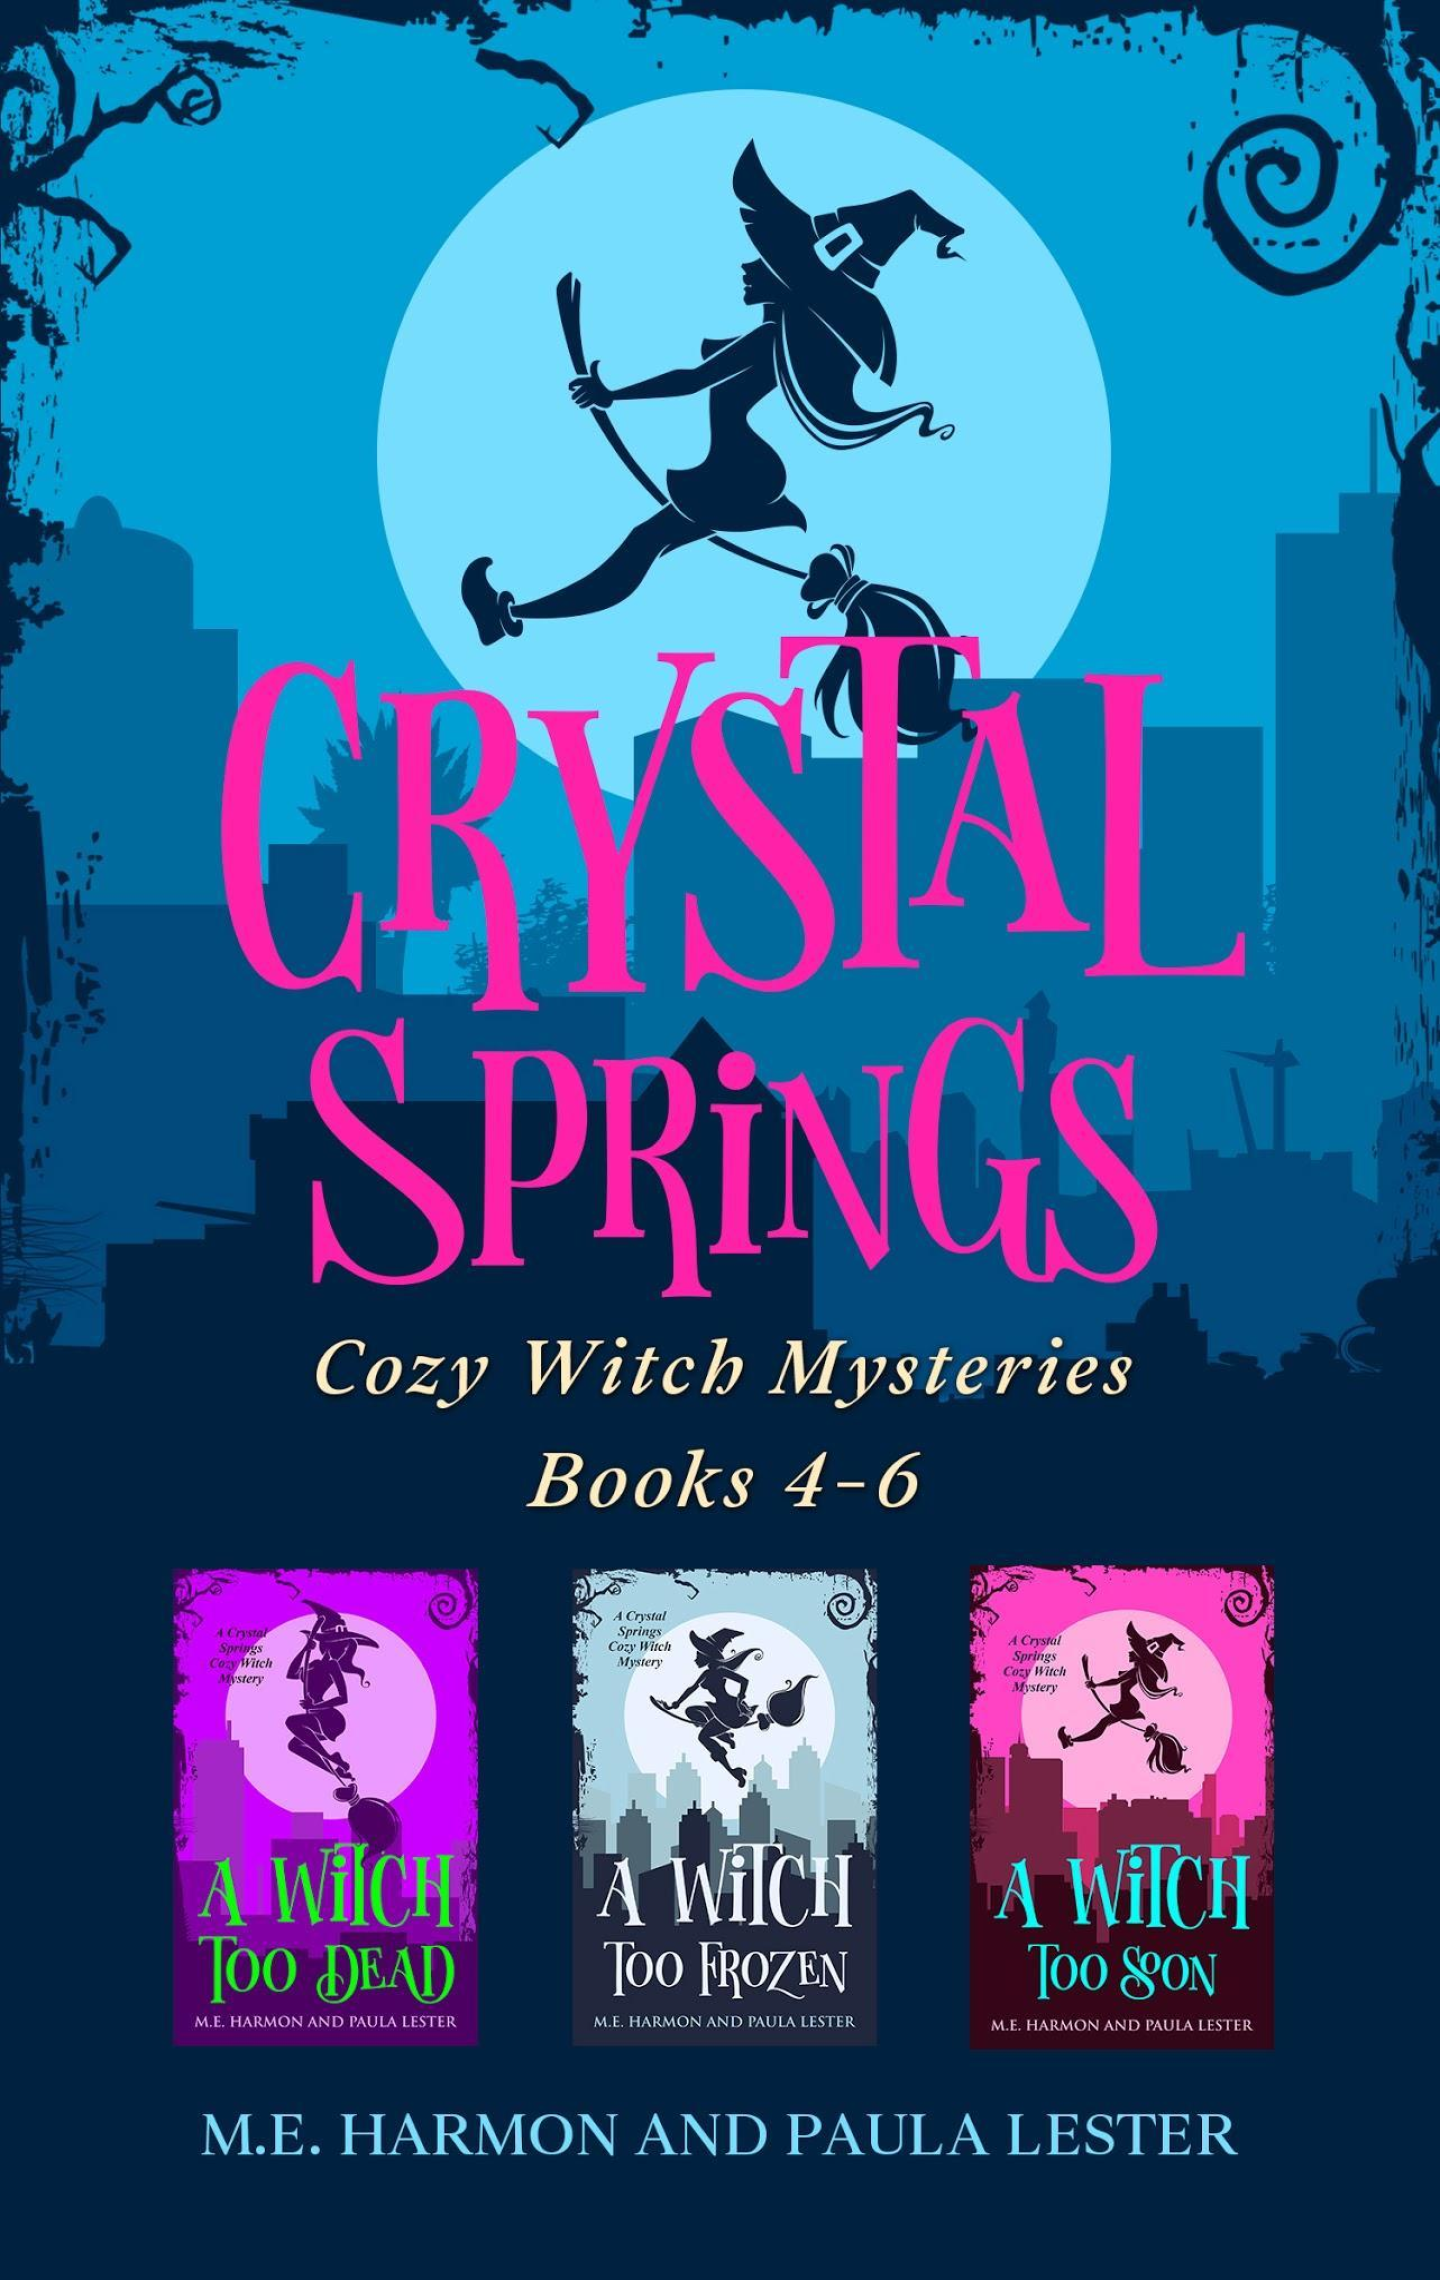 Crystal Springs Cozy Witch Mysteries Boxset 2